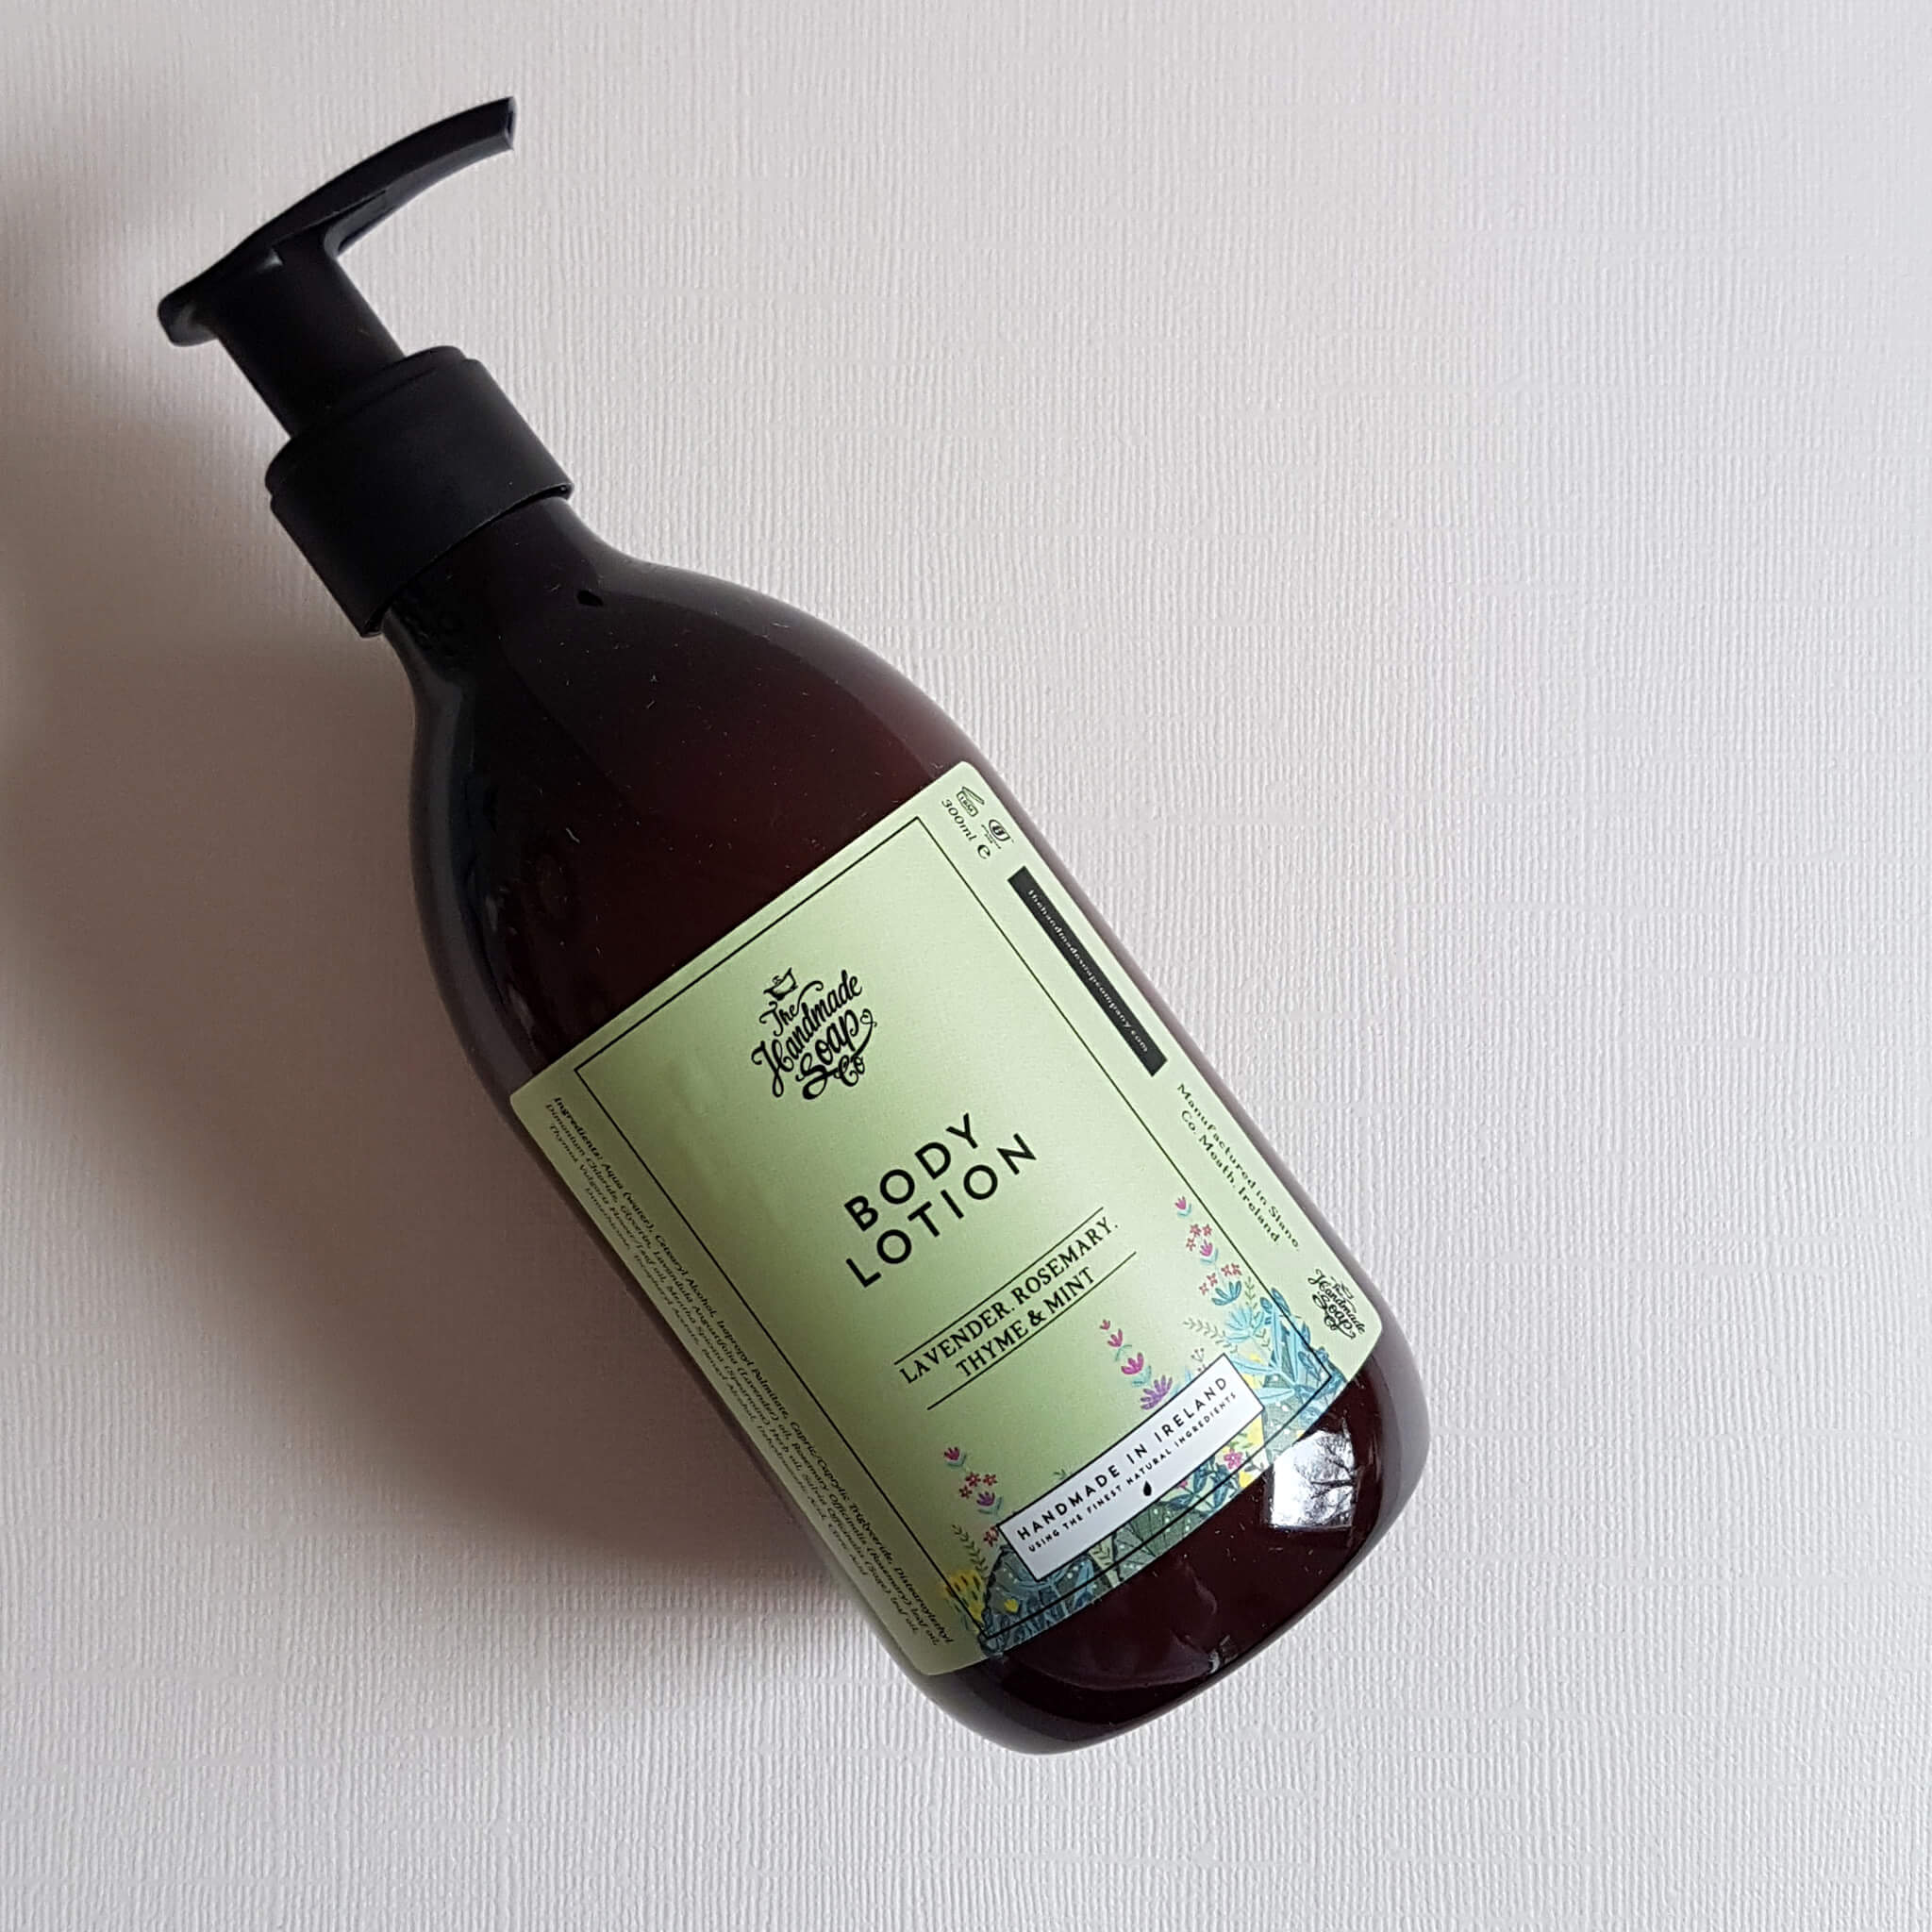 Lavender Rosemary Thyme & Mint Body Lotion - Unik by Nature